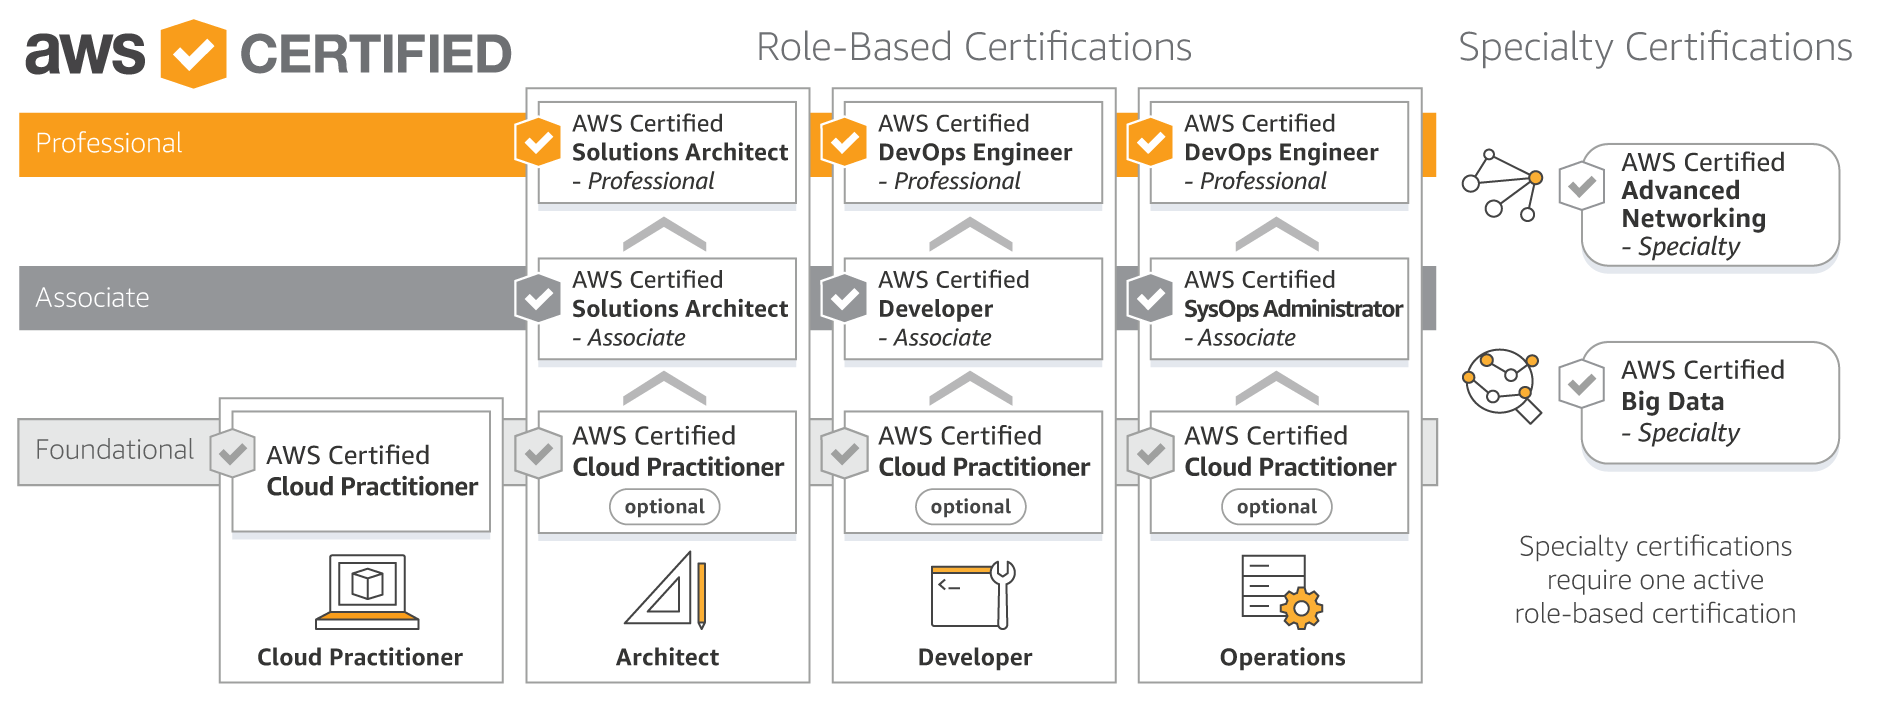 https://d1.awsstatic.com/training-and-certification/cert-roadmap/cert-roadmap-v5.1.6824f3c5554816528d234ceb4317a8c600067700.png